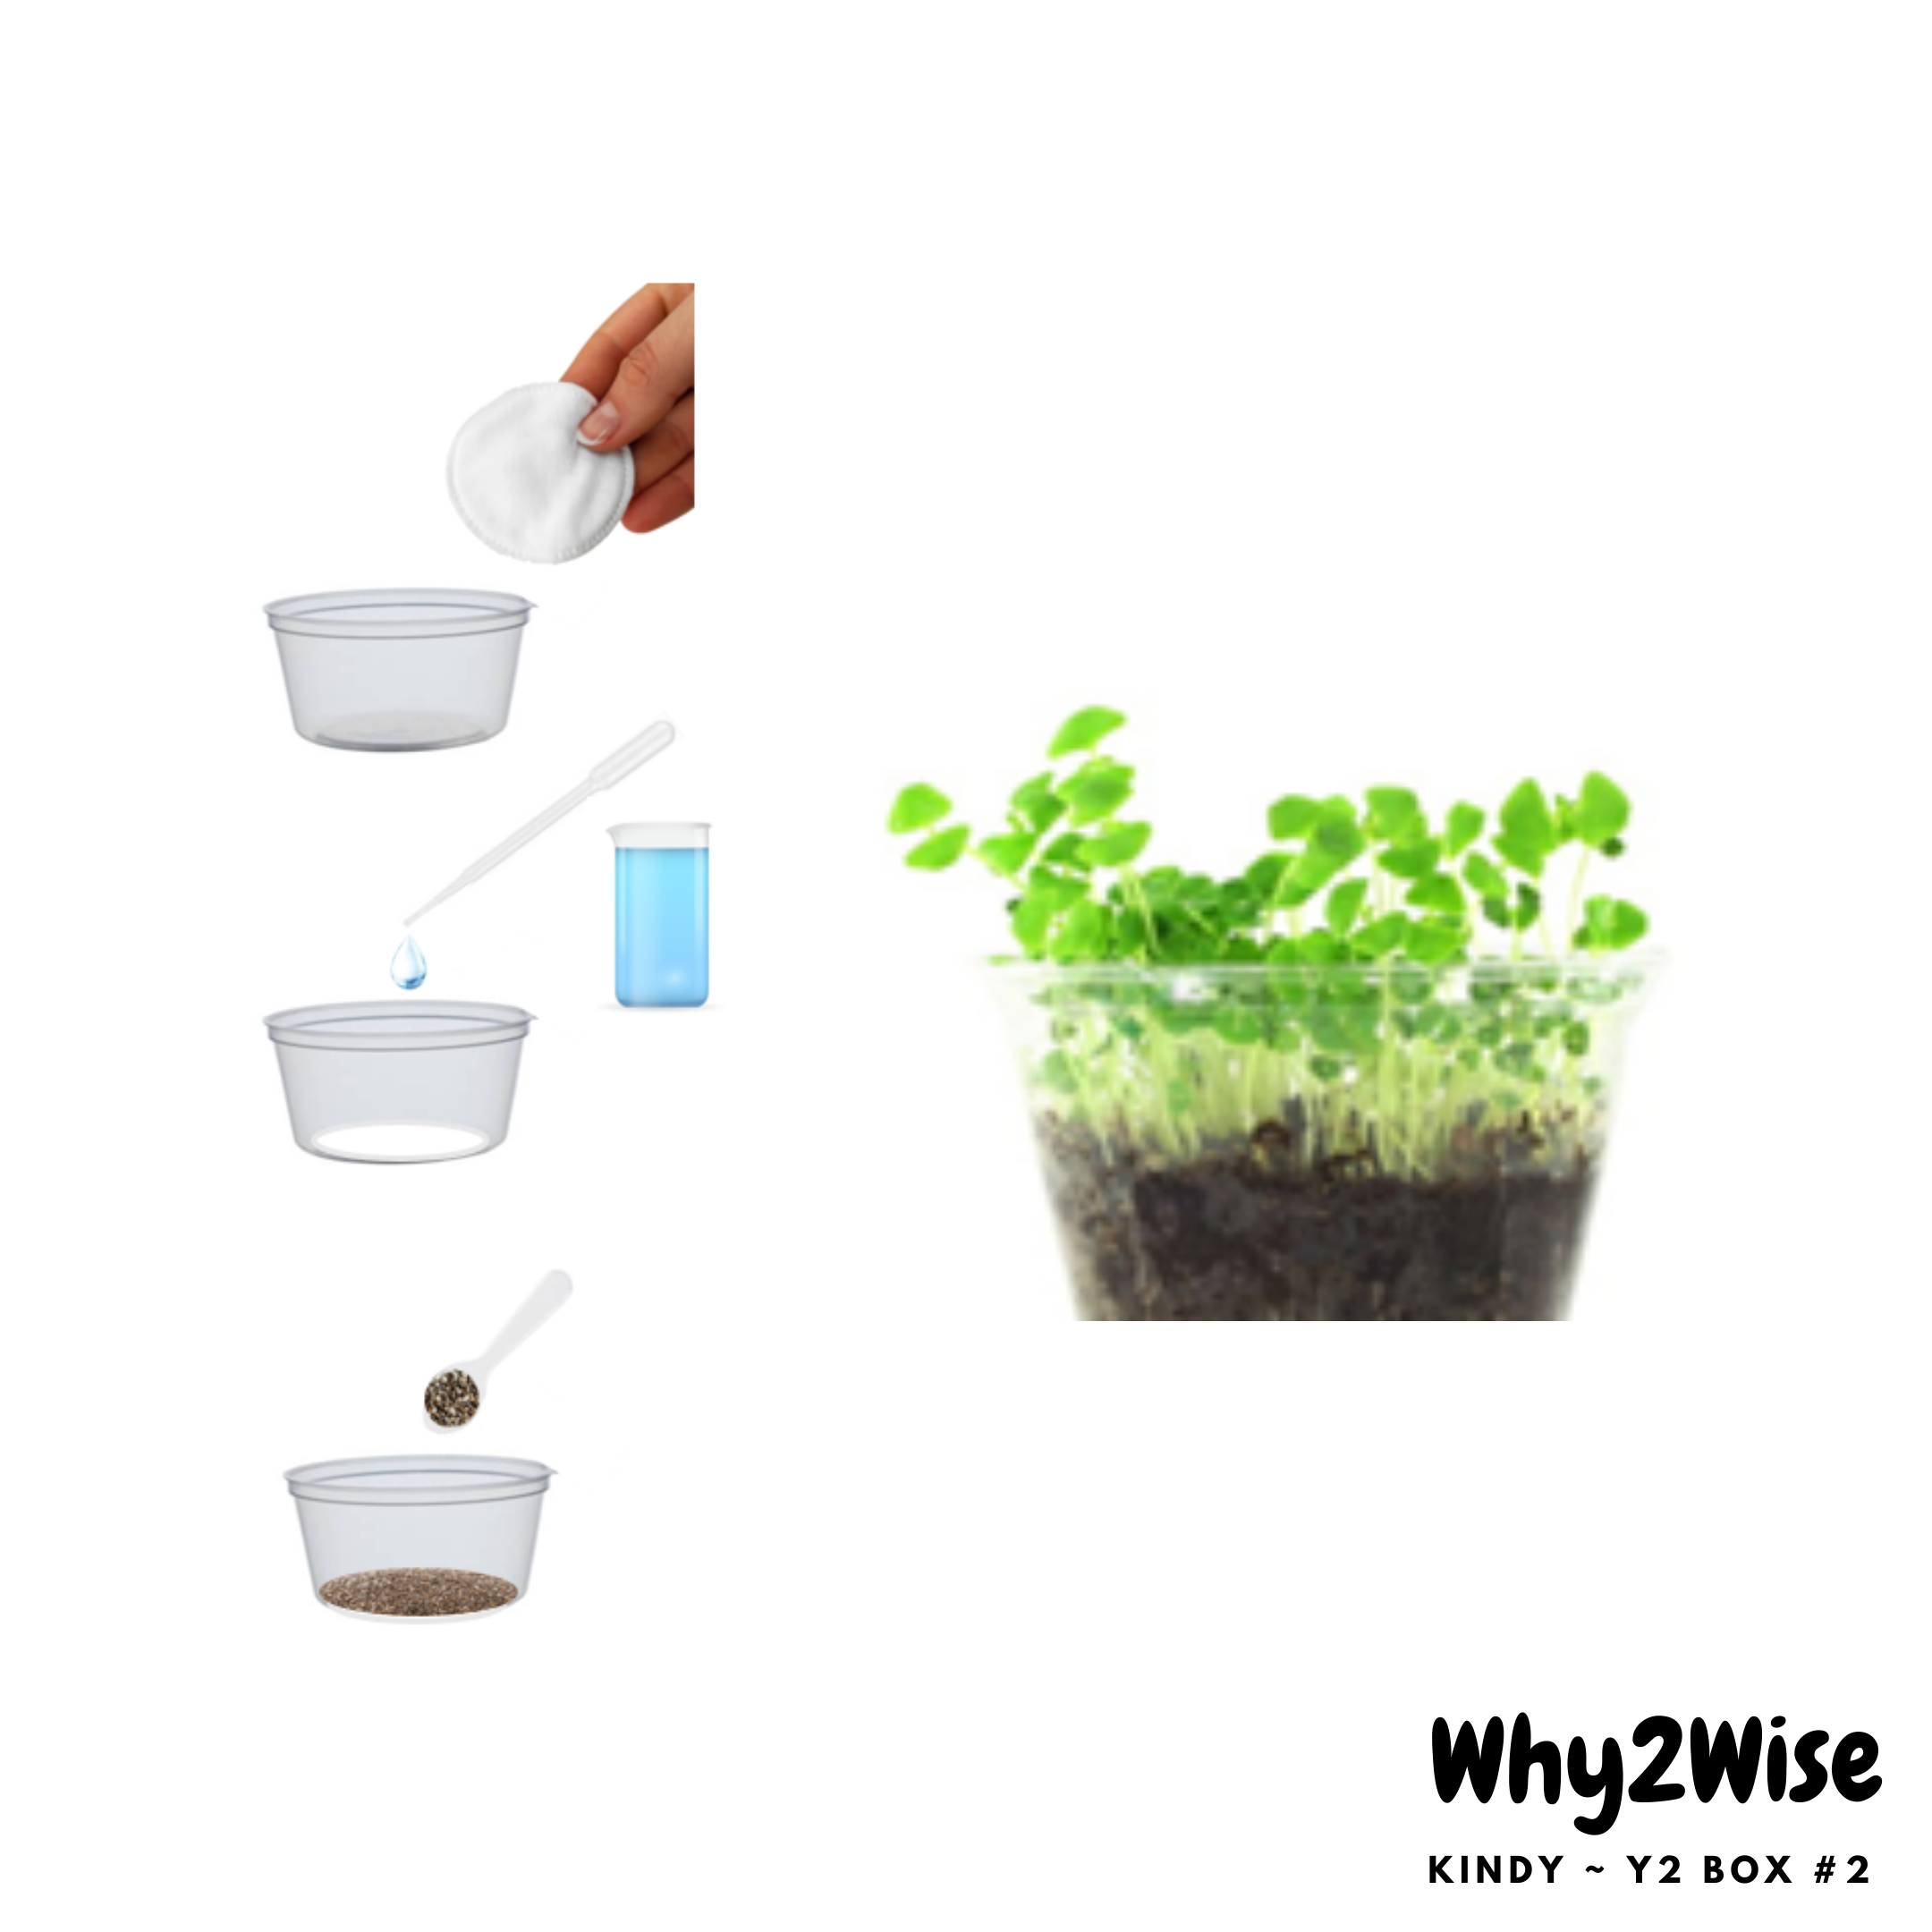 [Online Learning] K~Y2 Science Box #2 *pay with Creative Kids - Why2Wise